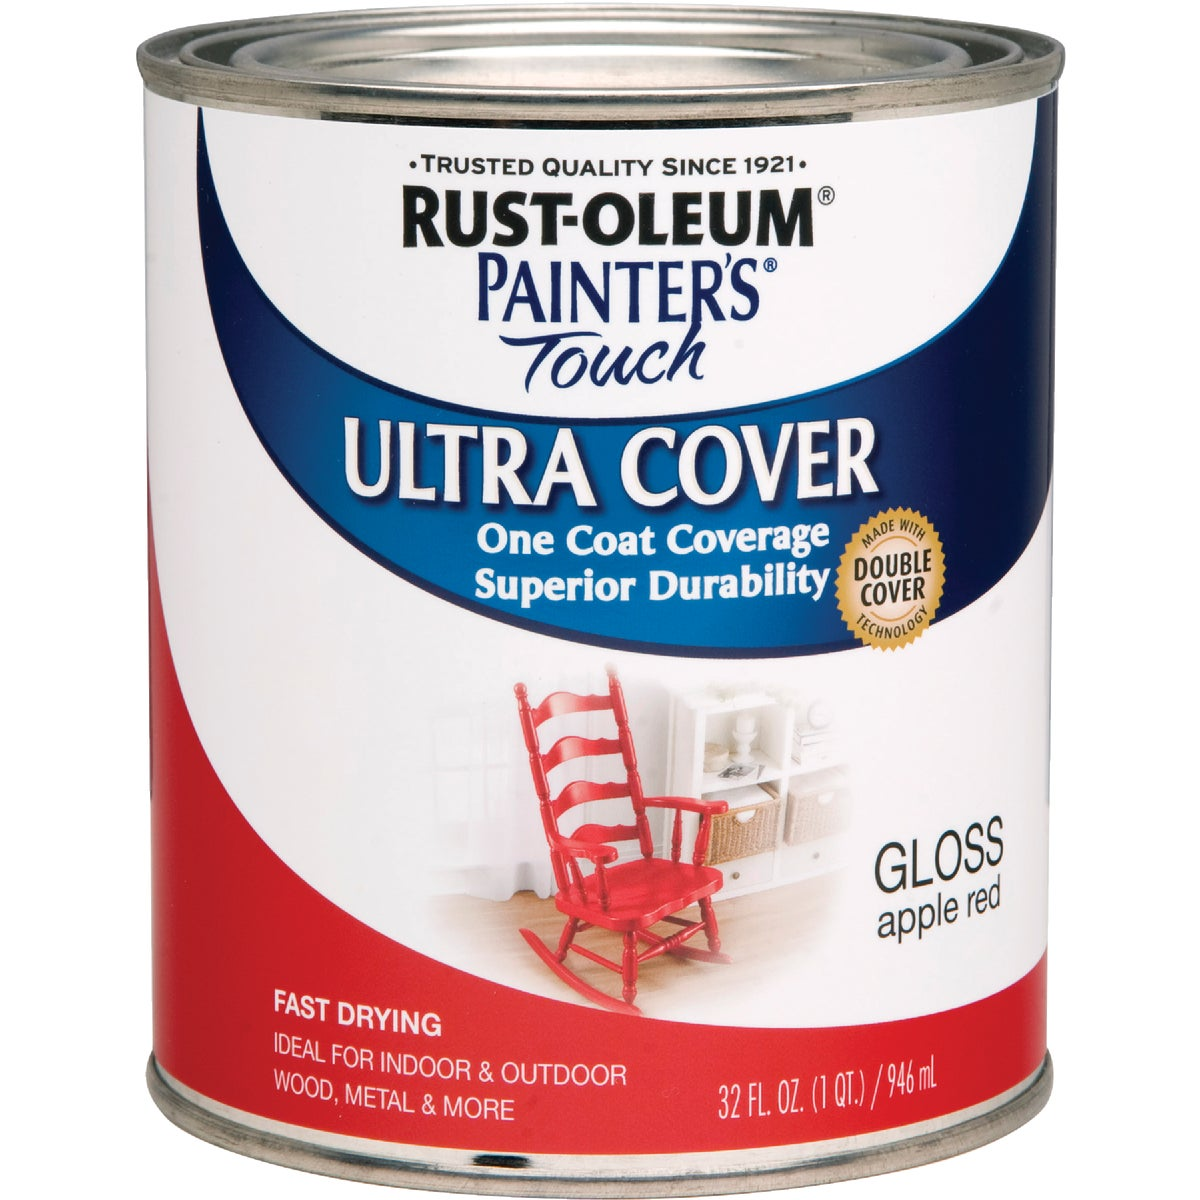 APPLE RED LATEX PAINT - 1966-502 by Rustoleum